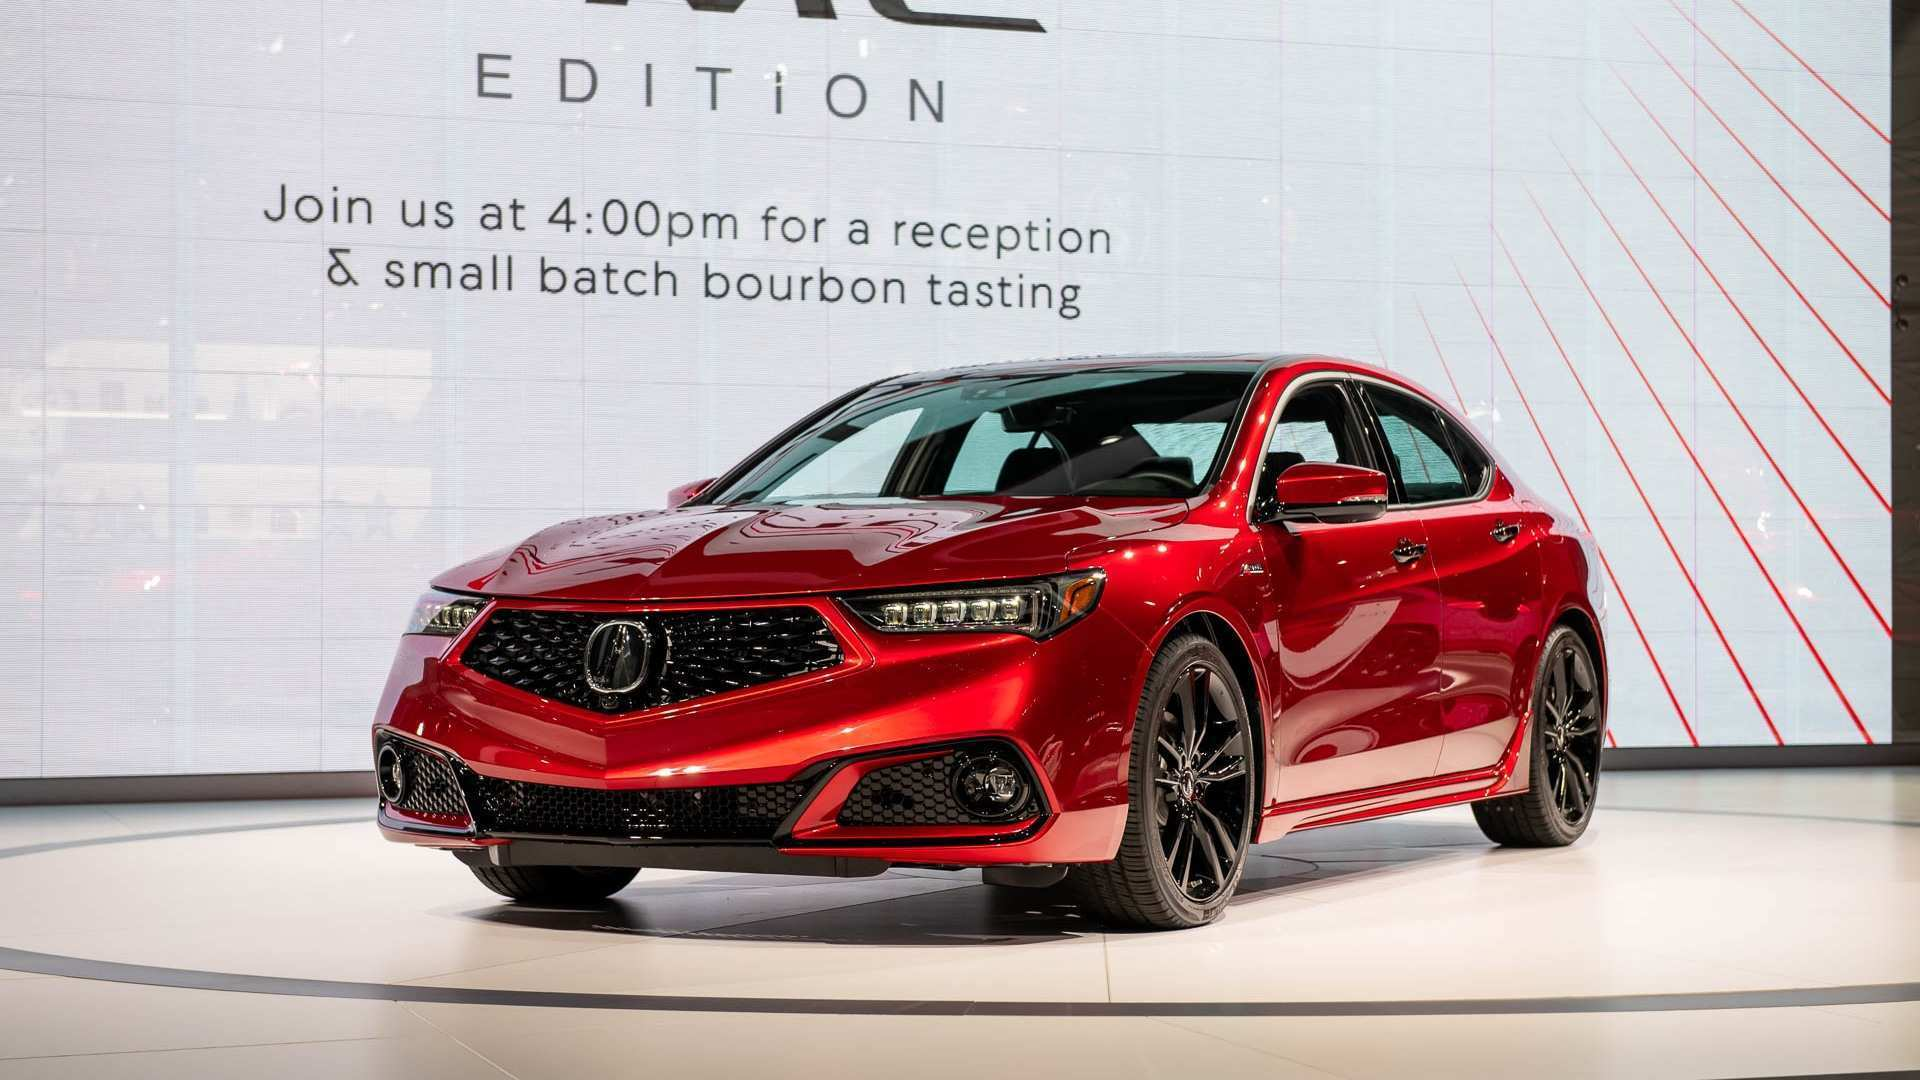 65 The 2020 Acura Mdx Pmc Edition Redesign